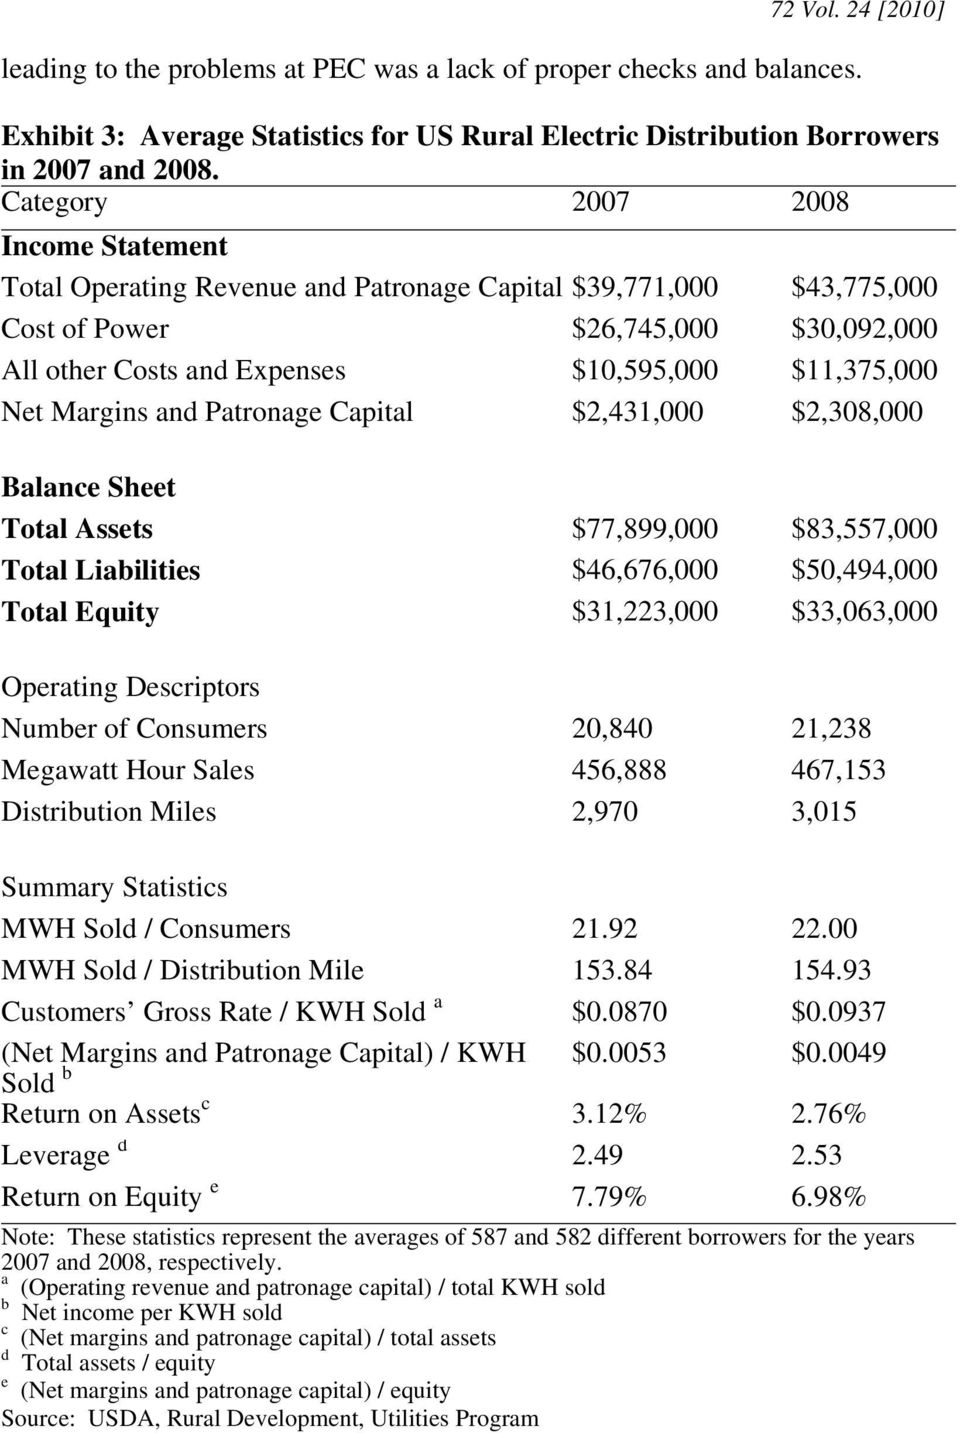 Net Margins and Patronage Capital $2,431,000 $2,308,000 Balance Sheet Total Assets $77,899,000 $83,557,000 Total Liabilities $46,676,000 $50,494,000 Total Equity $31,223,000 $33,063,000 Operating